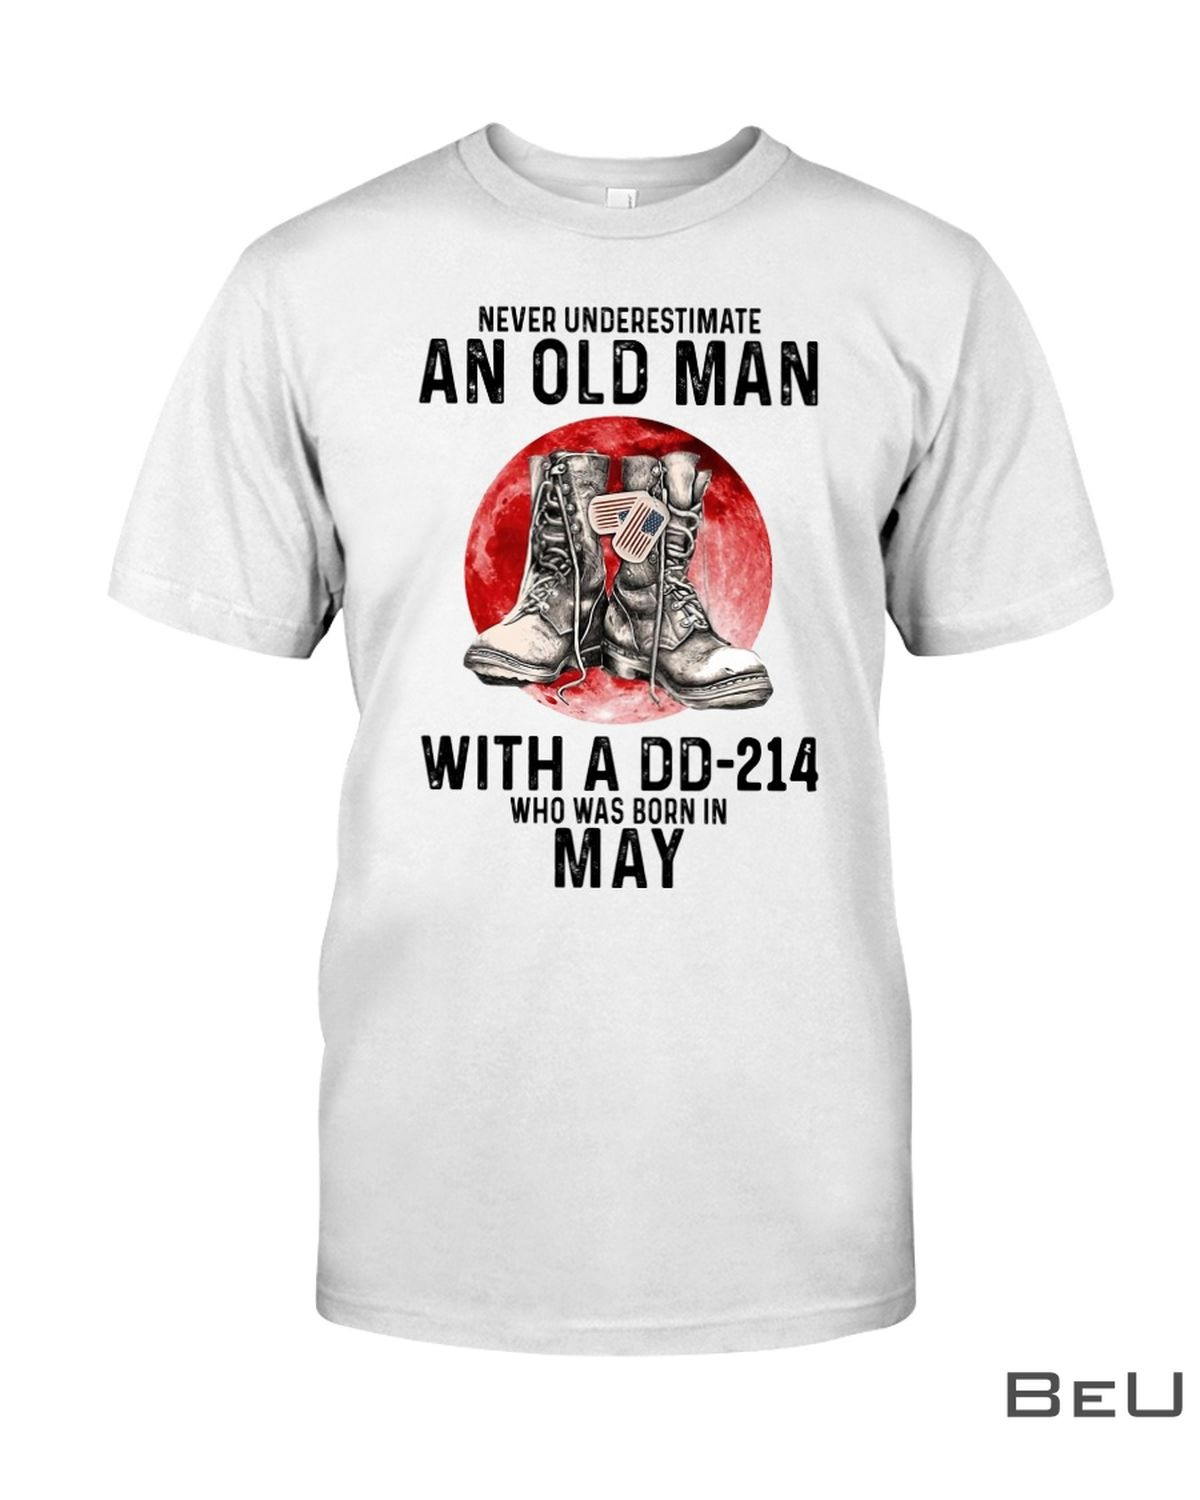 Never Underestimate An Old Man With A DD-214 Who Was Born In May Shirt